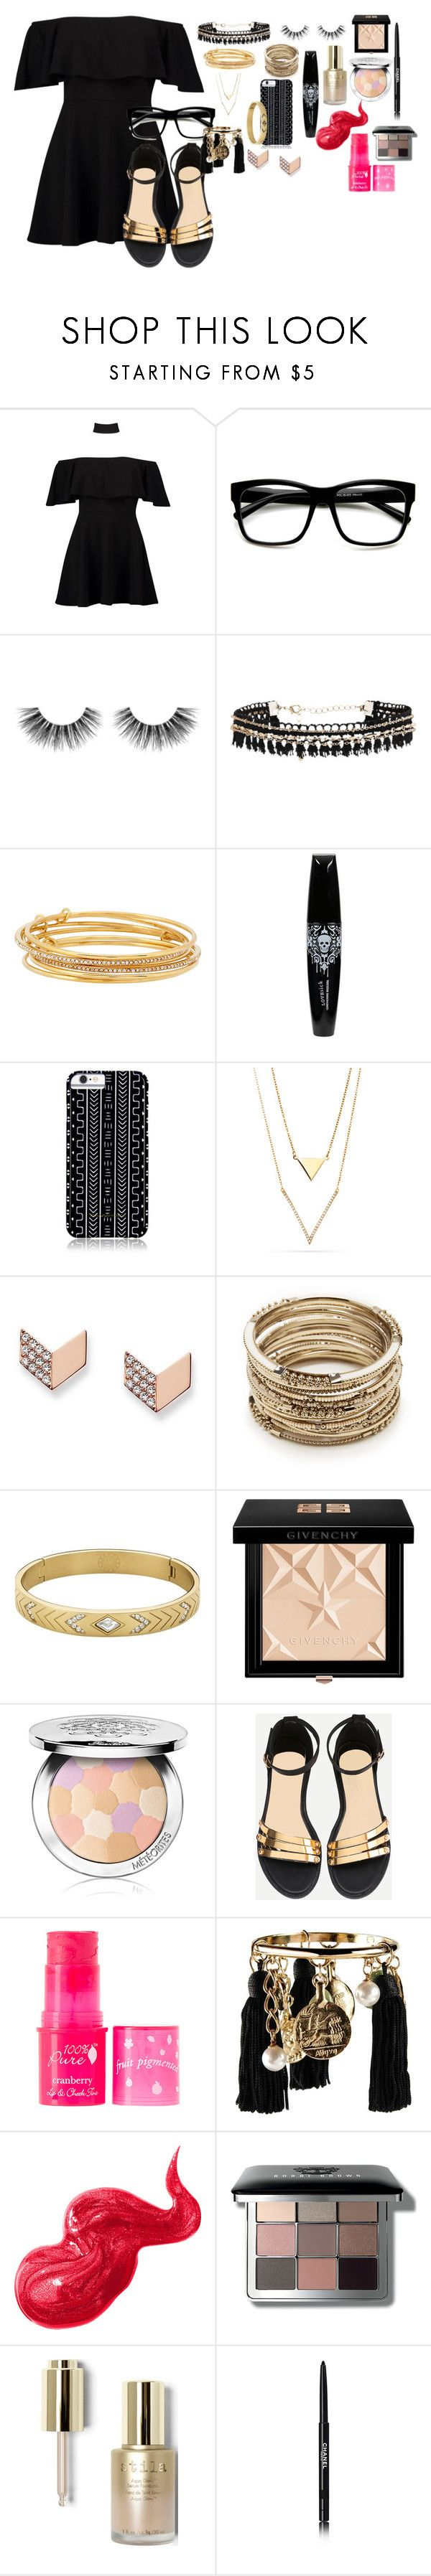 """""""Untitled #83"""" by style-koala ❤ liked on Polyvore featuring Boohoo, ZeroUV, Velour Lashes, Kate Spade, Hot Topic, Savannah Hayes, FOSSIL, Sole Society, Dyrberg/Kern and Givenchy"""